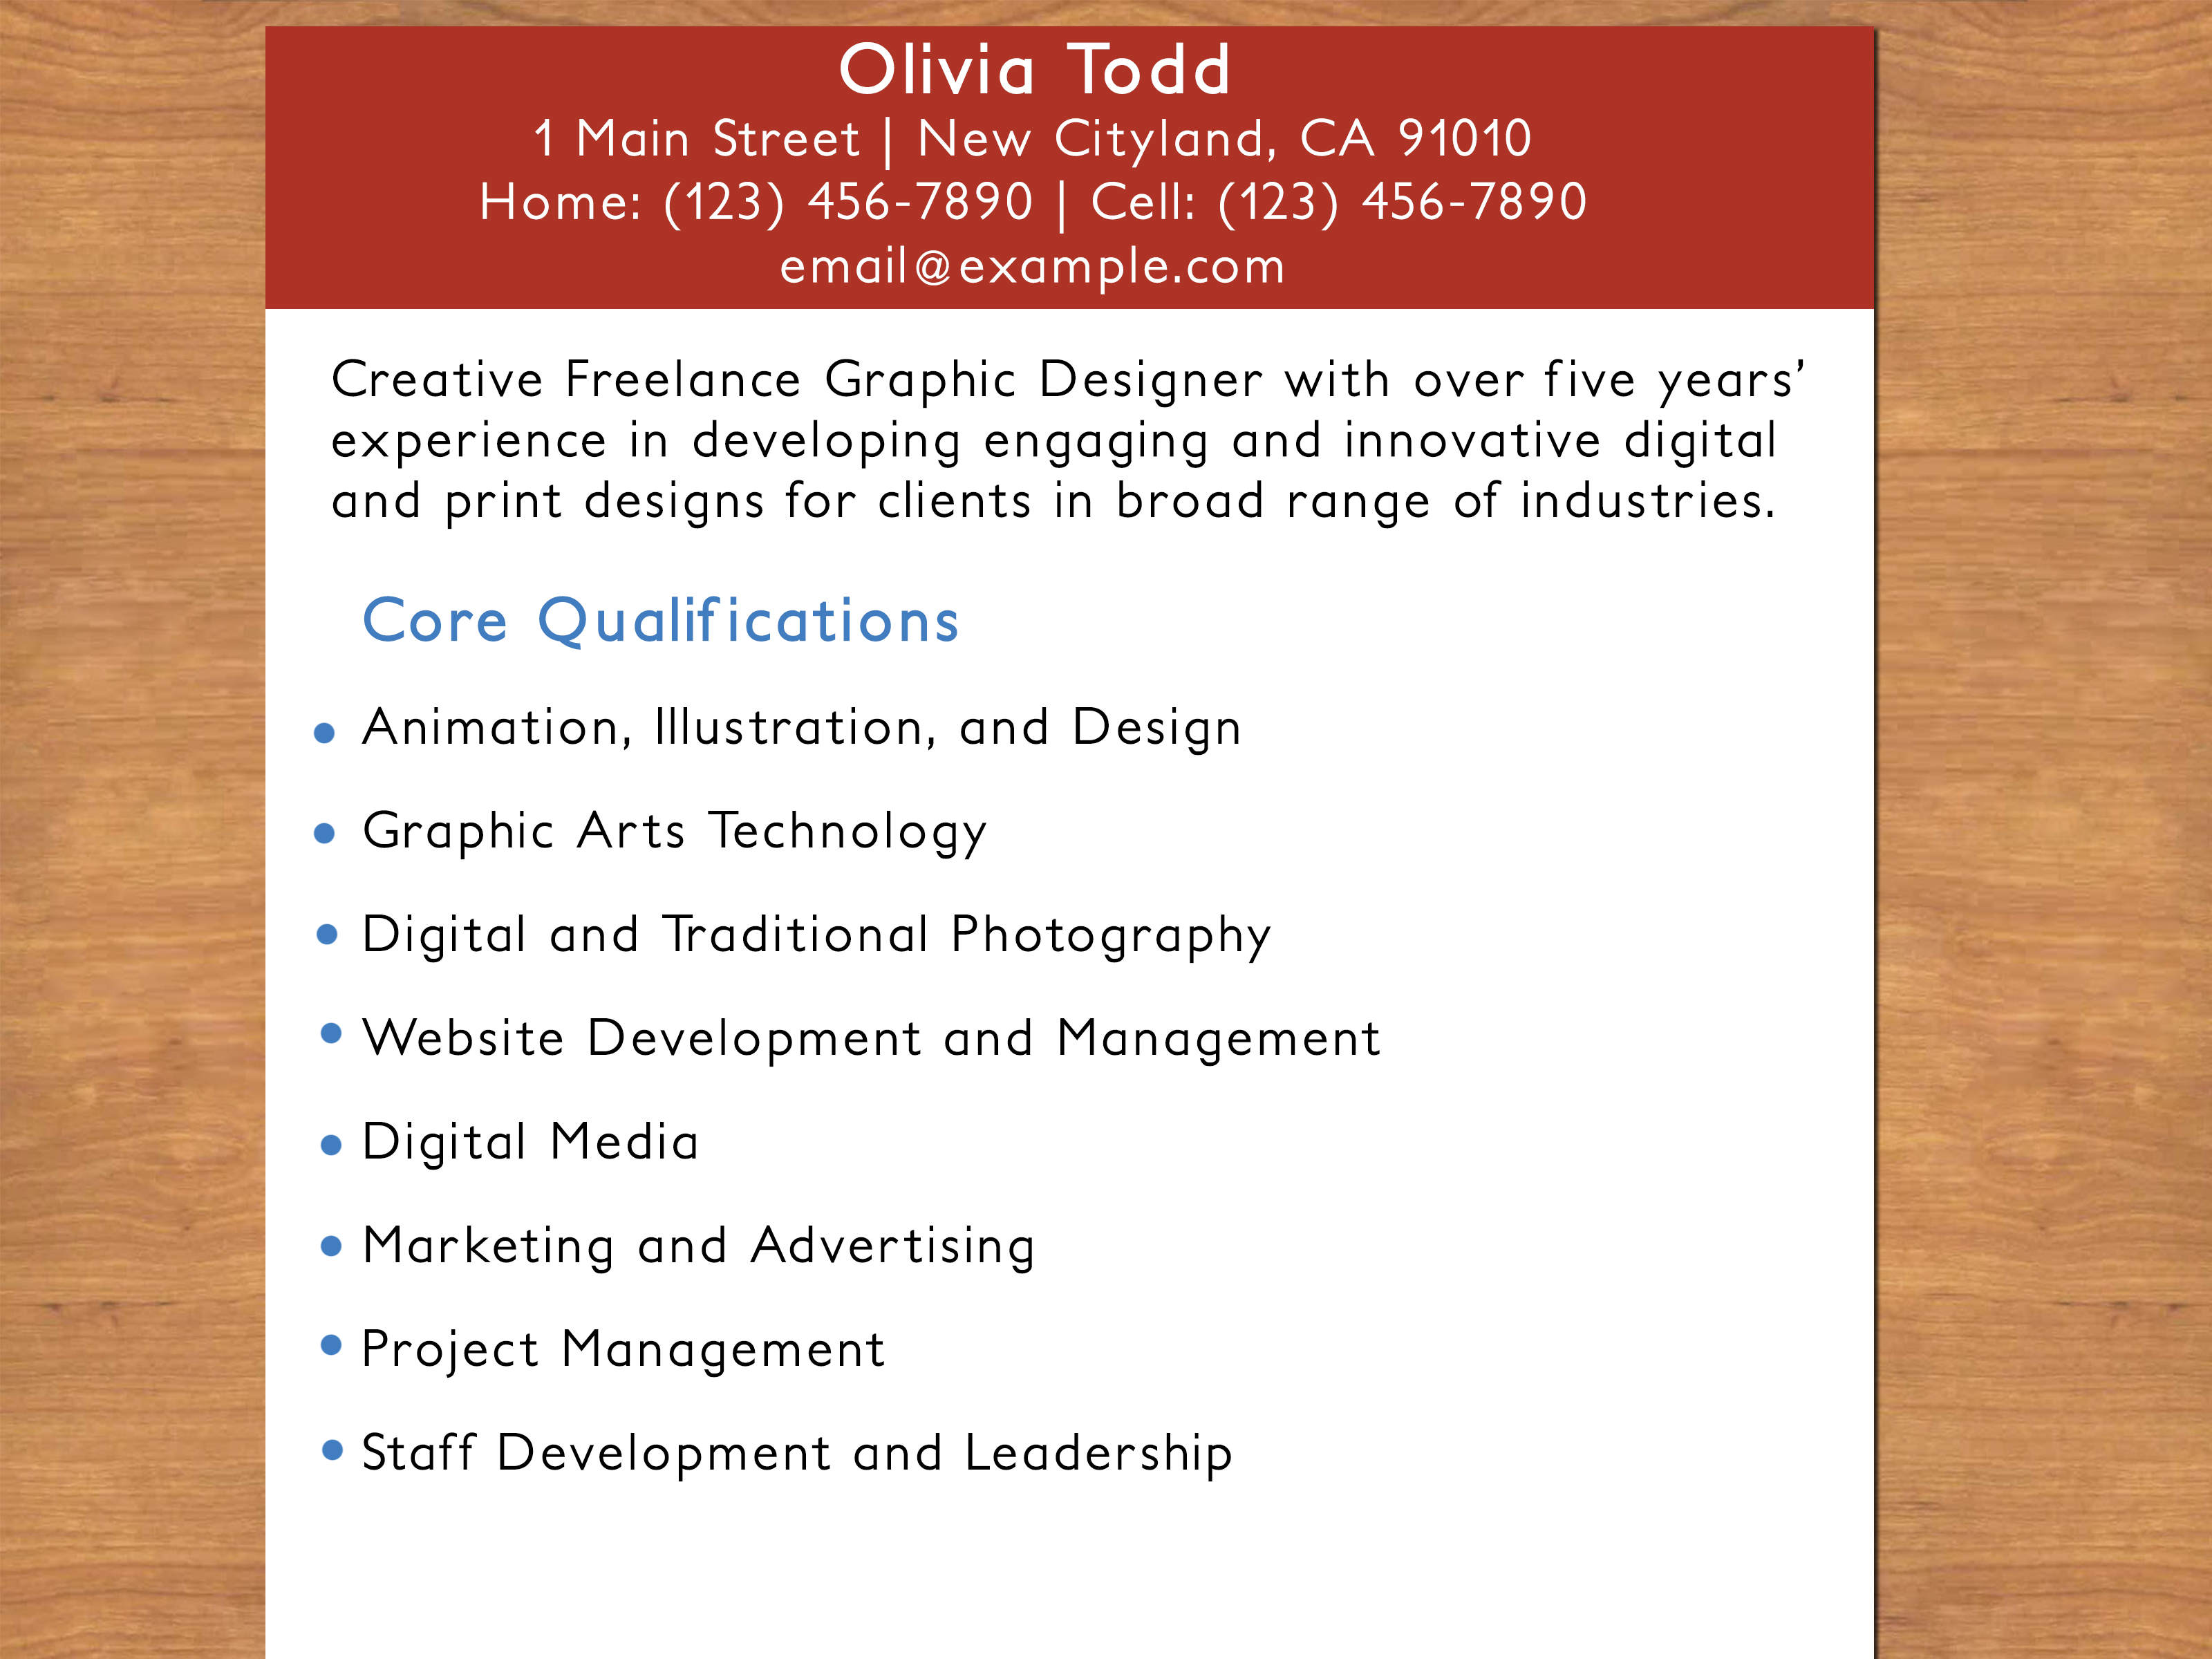 Please find attached copy my resume